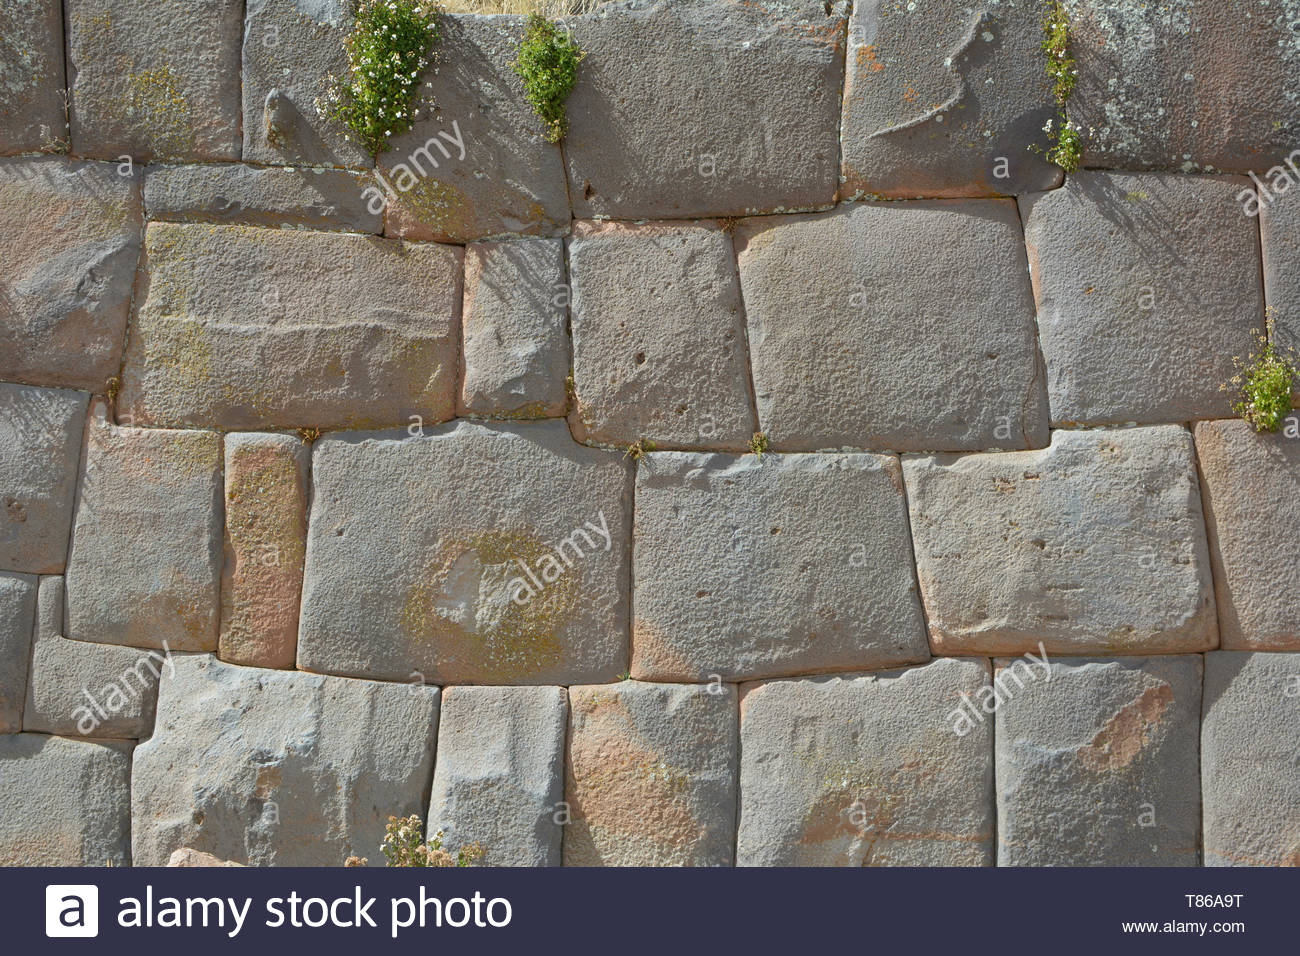 Polygonal and rectangular textured natural megalithic Stone wall made by ancient Incas from Peru and Bolivia of pre-colonial Colombian South America - - Stock Image